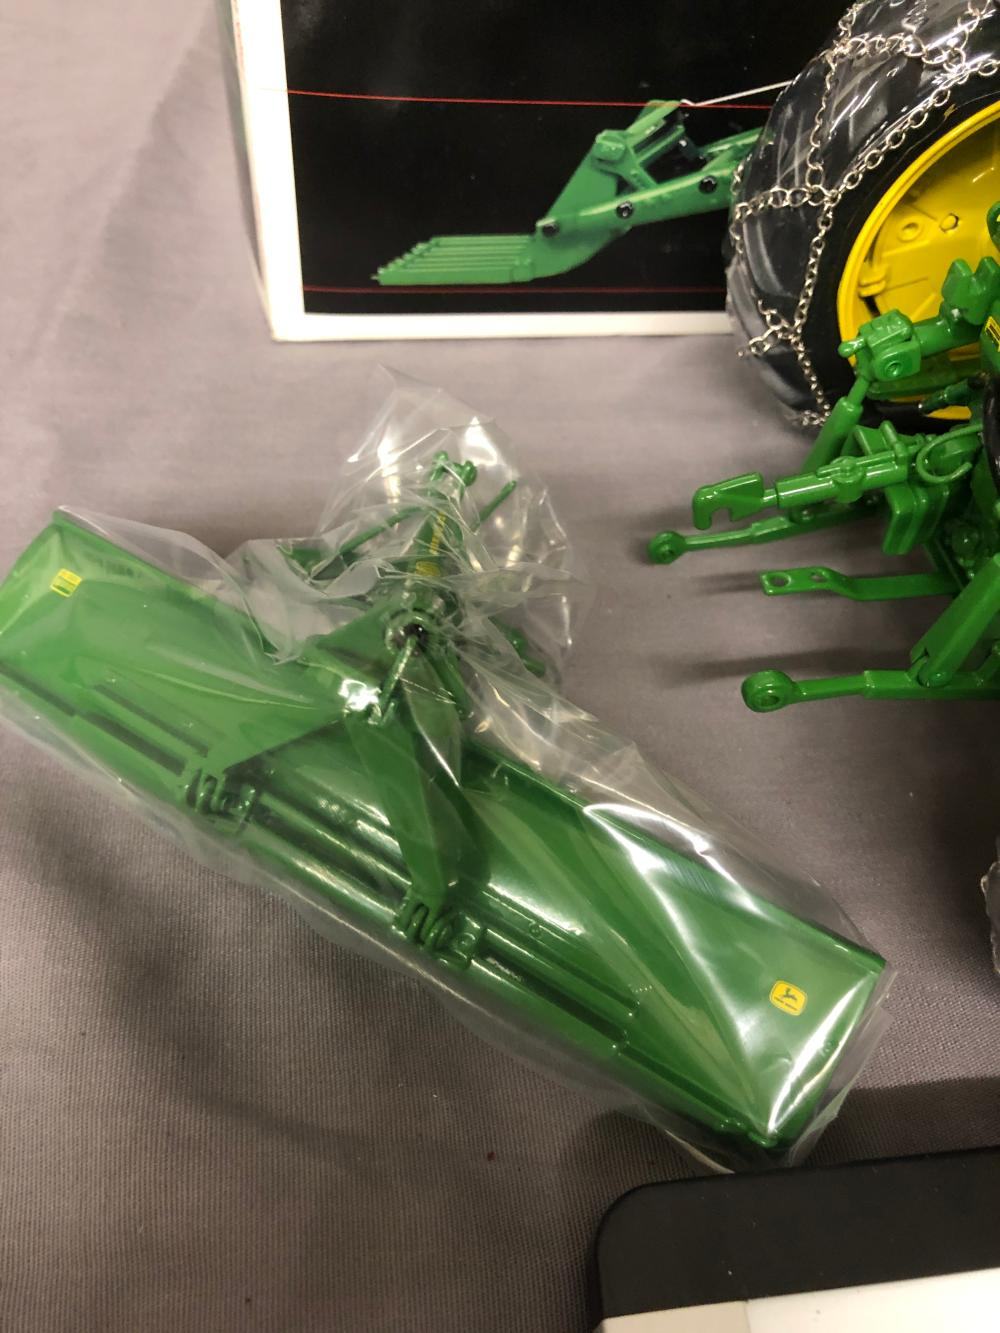 Lot 49: 1/16th scale Precision JD 720 w/ Blade & Loader